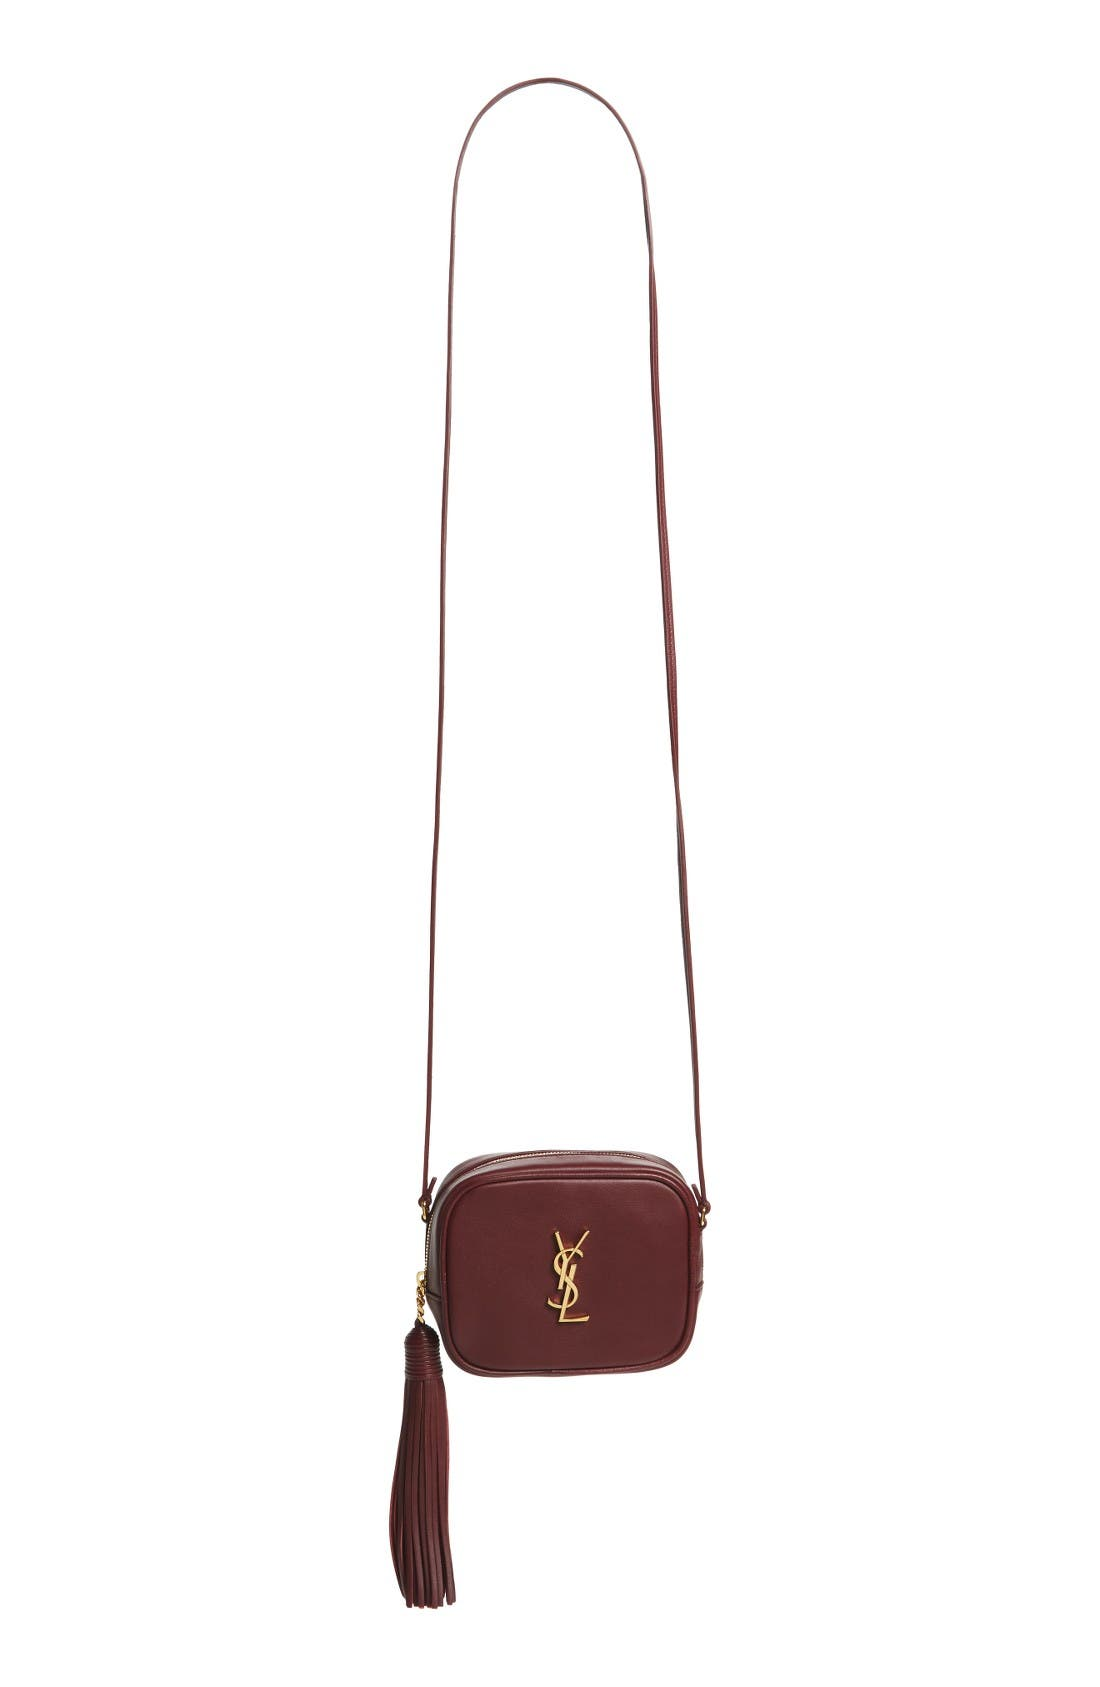 'Monogram Mini Blogger' Crossbody Bag,                             Main thumbnail 1, color,                             Rouge Legion/ Nero